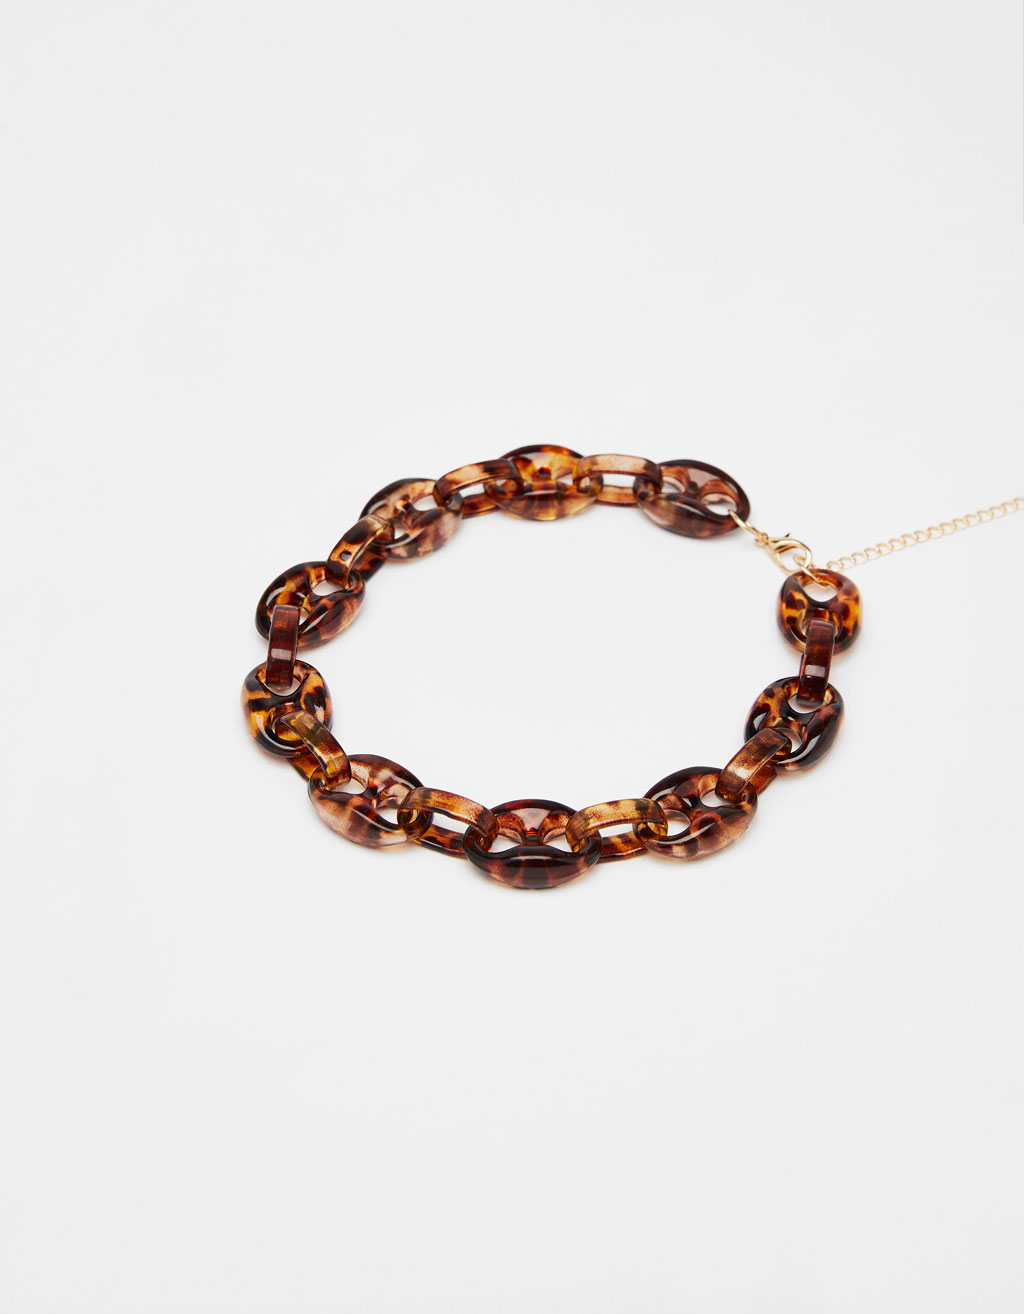 Necklace with tortoiseshell links